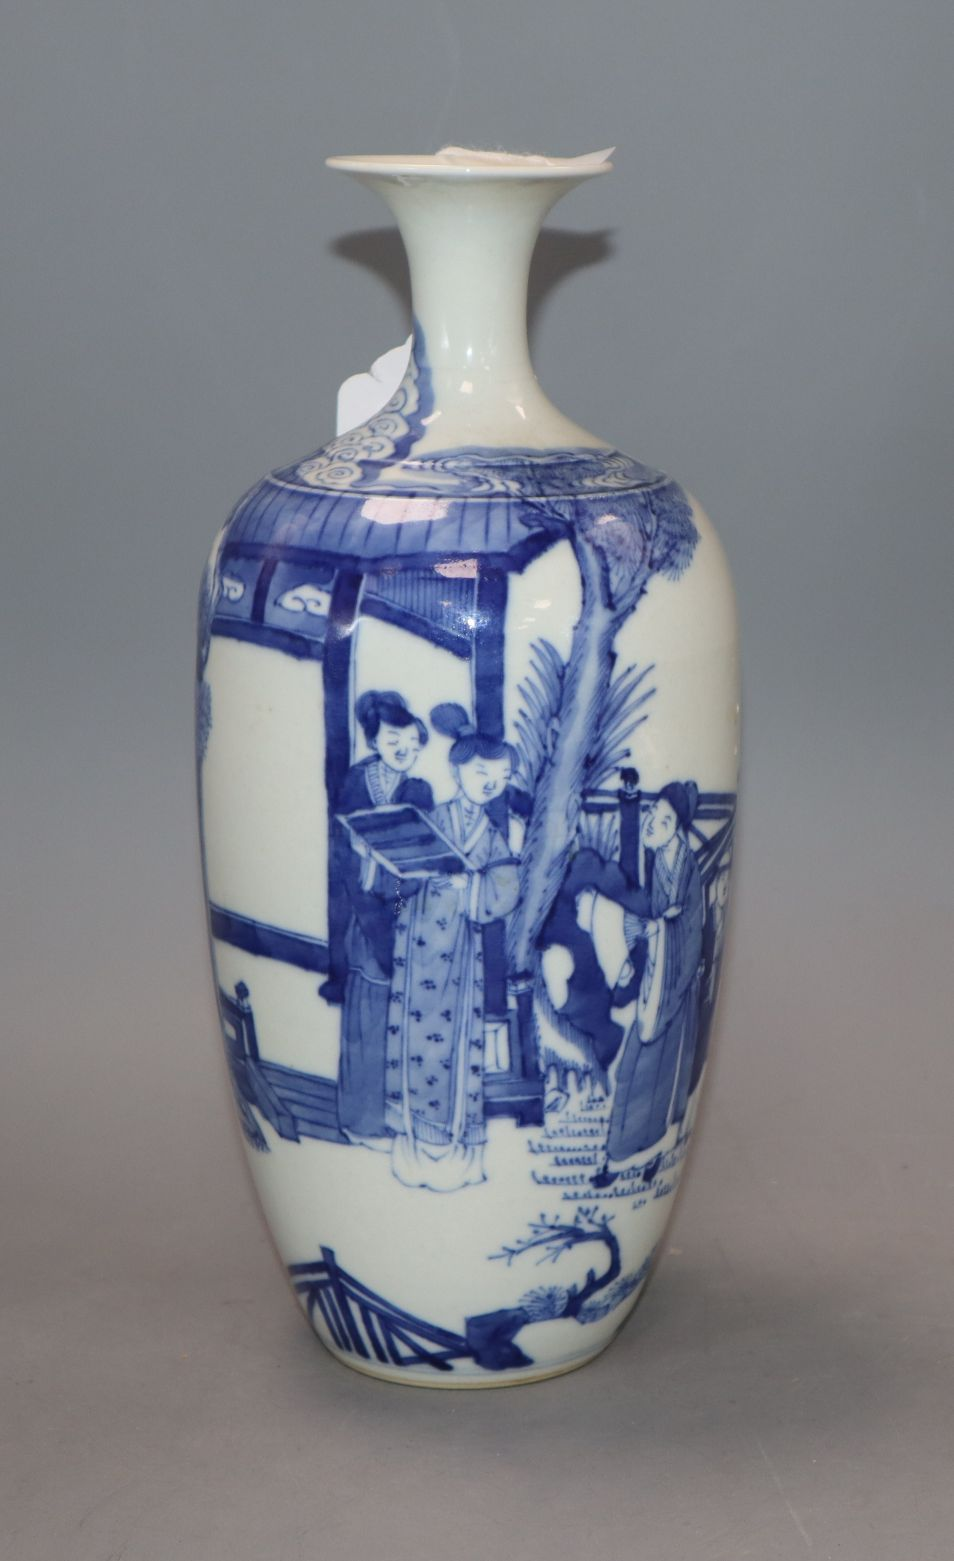 Lot 234 - A Chinese blue and white vase, Guangxu period